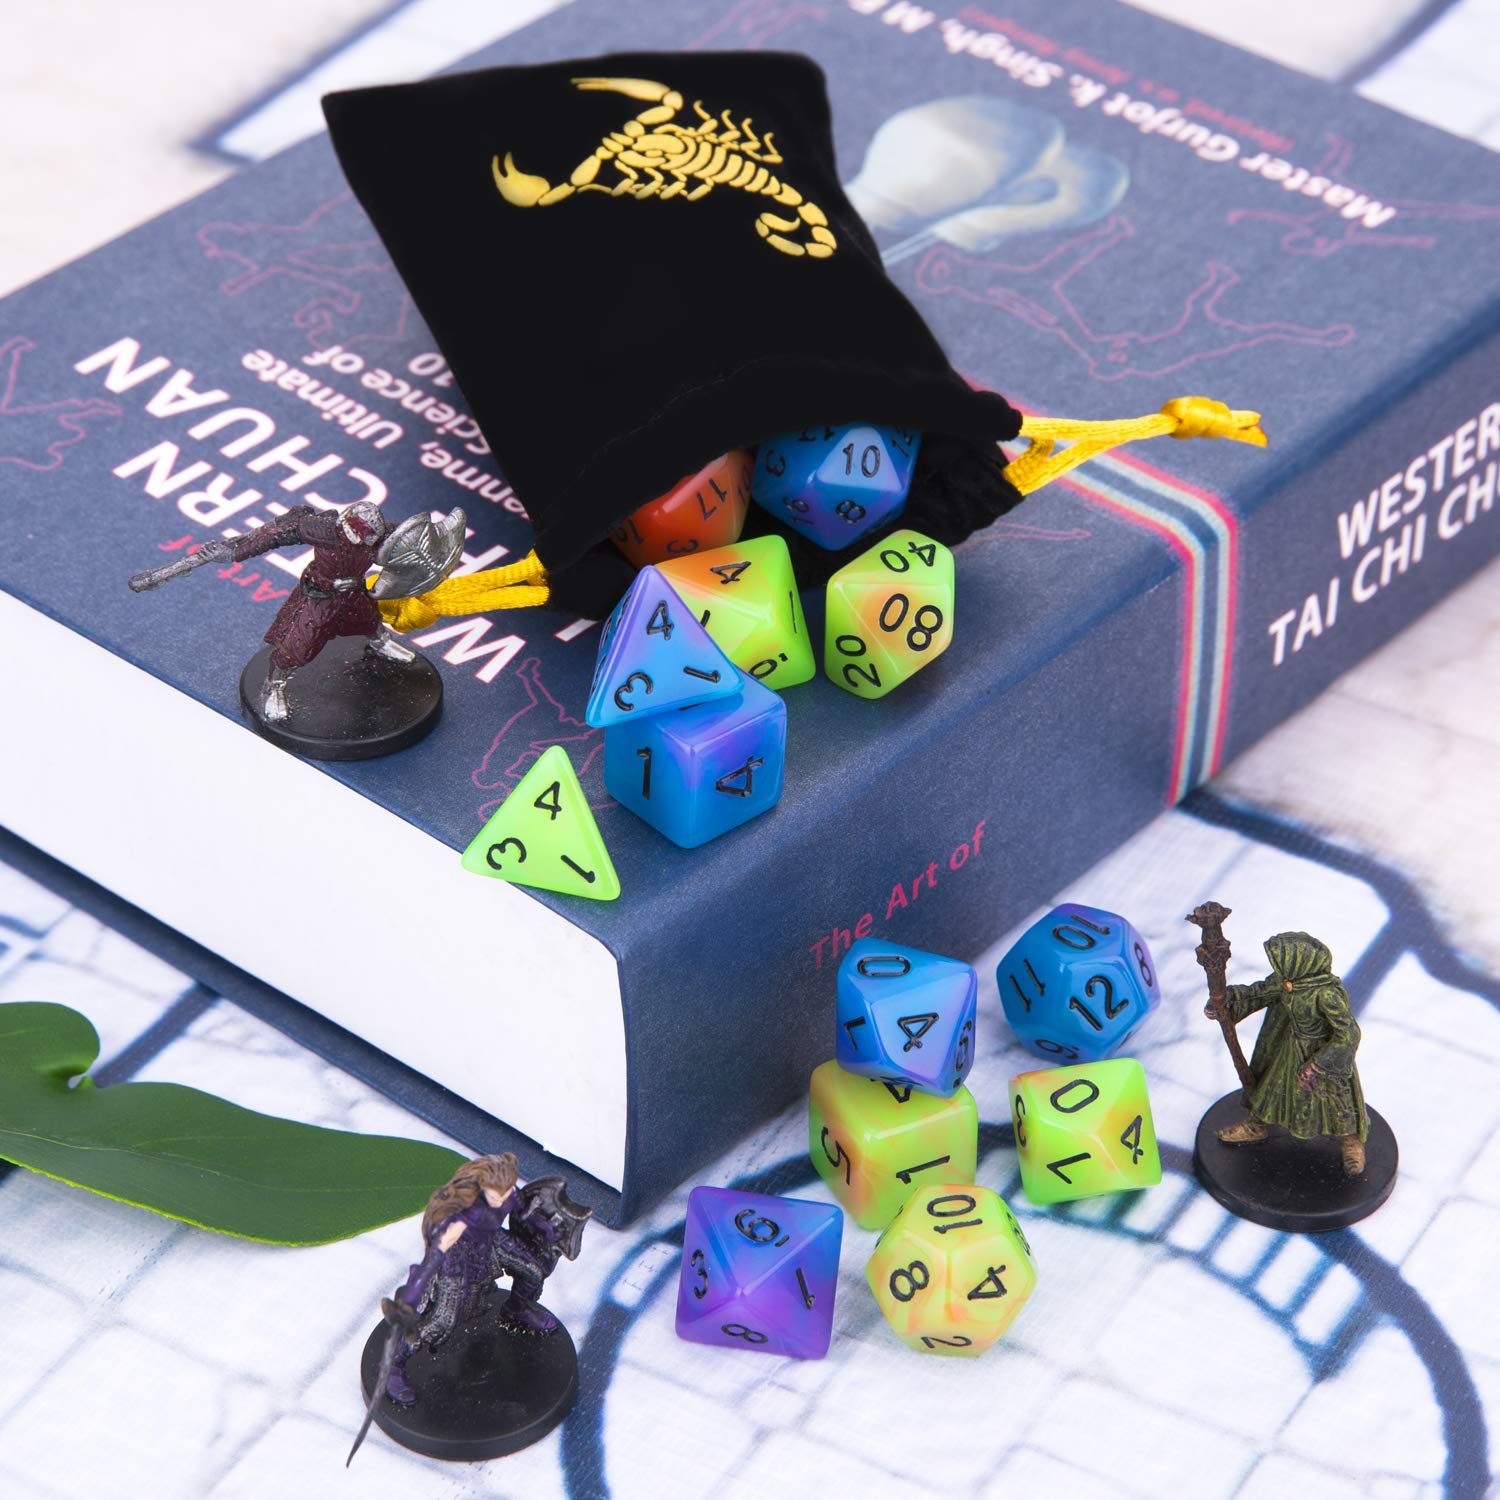 Double Color Glowing Polyhedral Dice 2 Set 14pcs Luminous RPG Dice Set d4 d6 d8 d10 d12 d20 d/% Colored Metal Box Packaging for Dungeons and Dragons DND RPG MTG Table Games